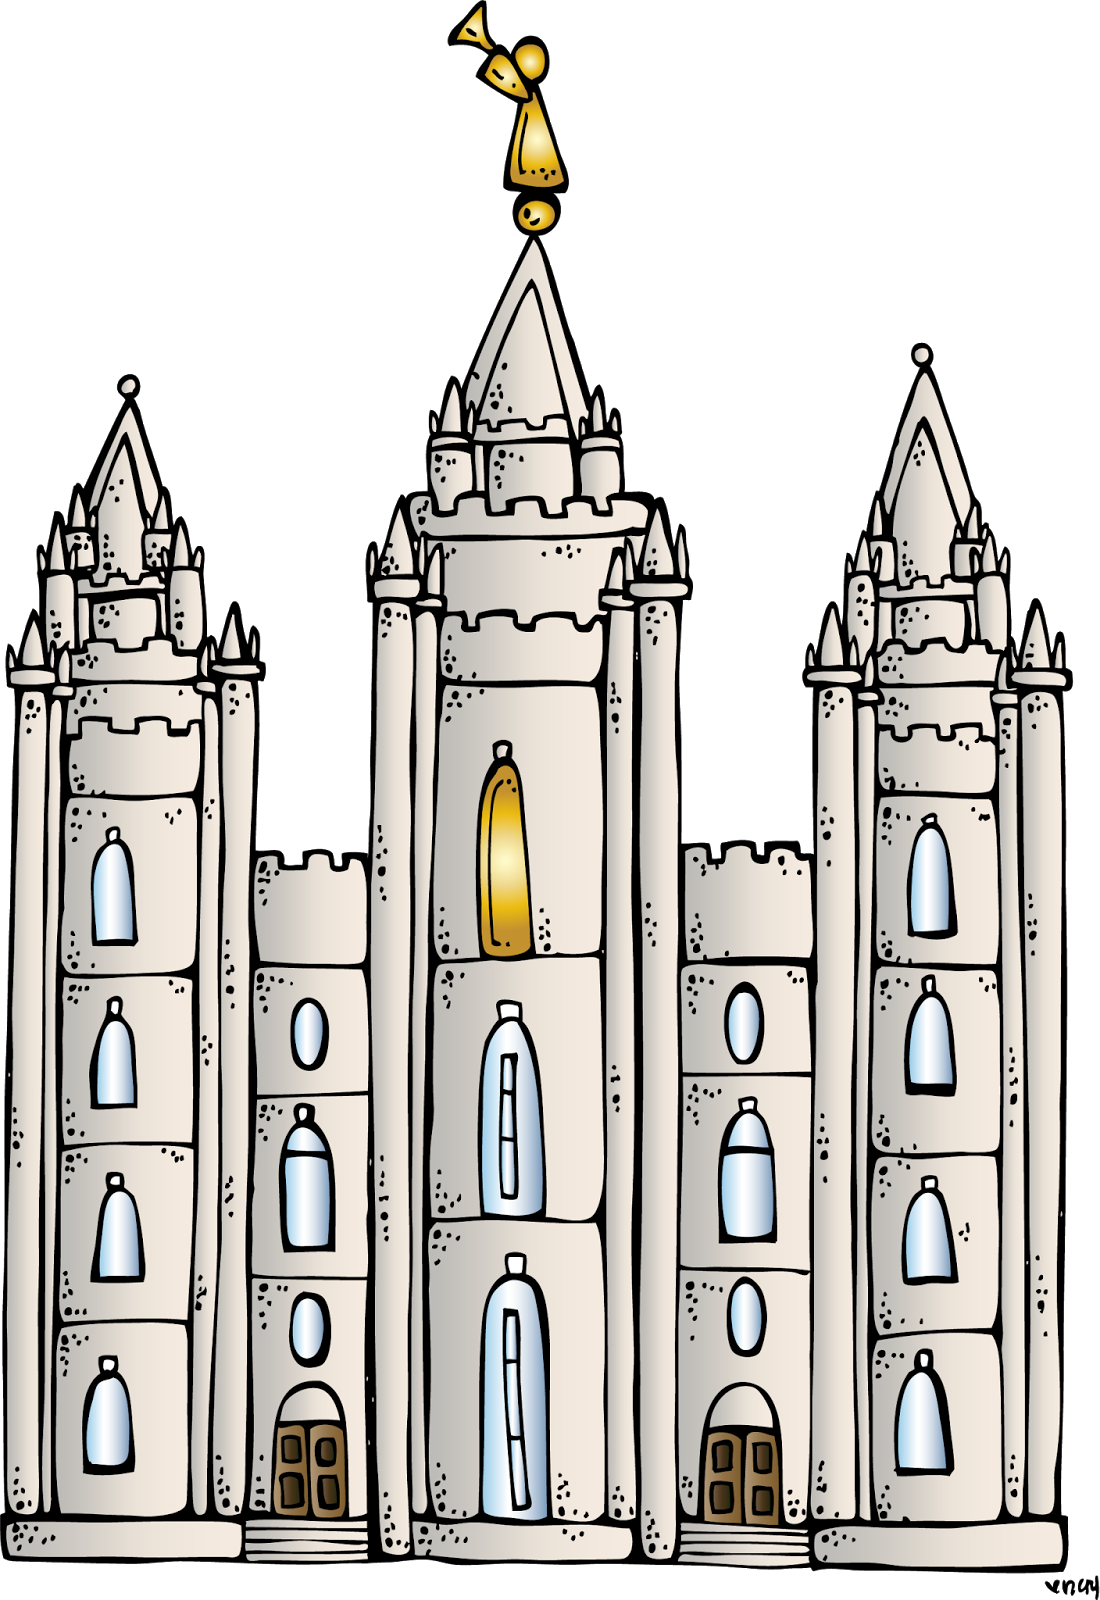 Melonheadz LDS illustrating: I Love to see the temple coloring page, and  Salt Lake